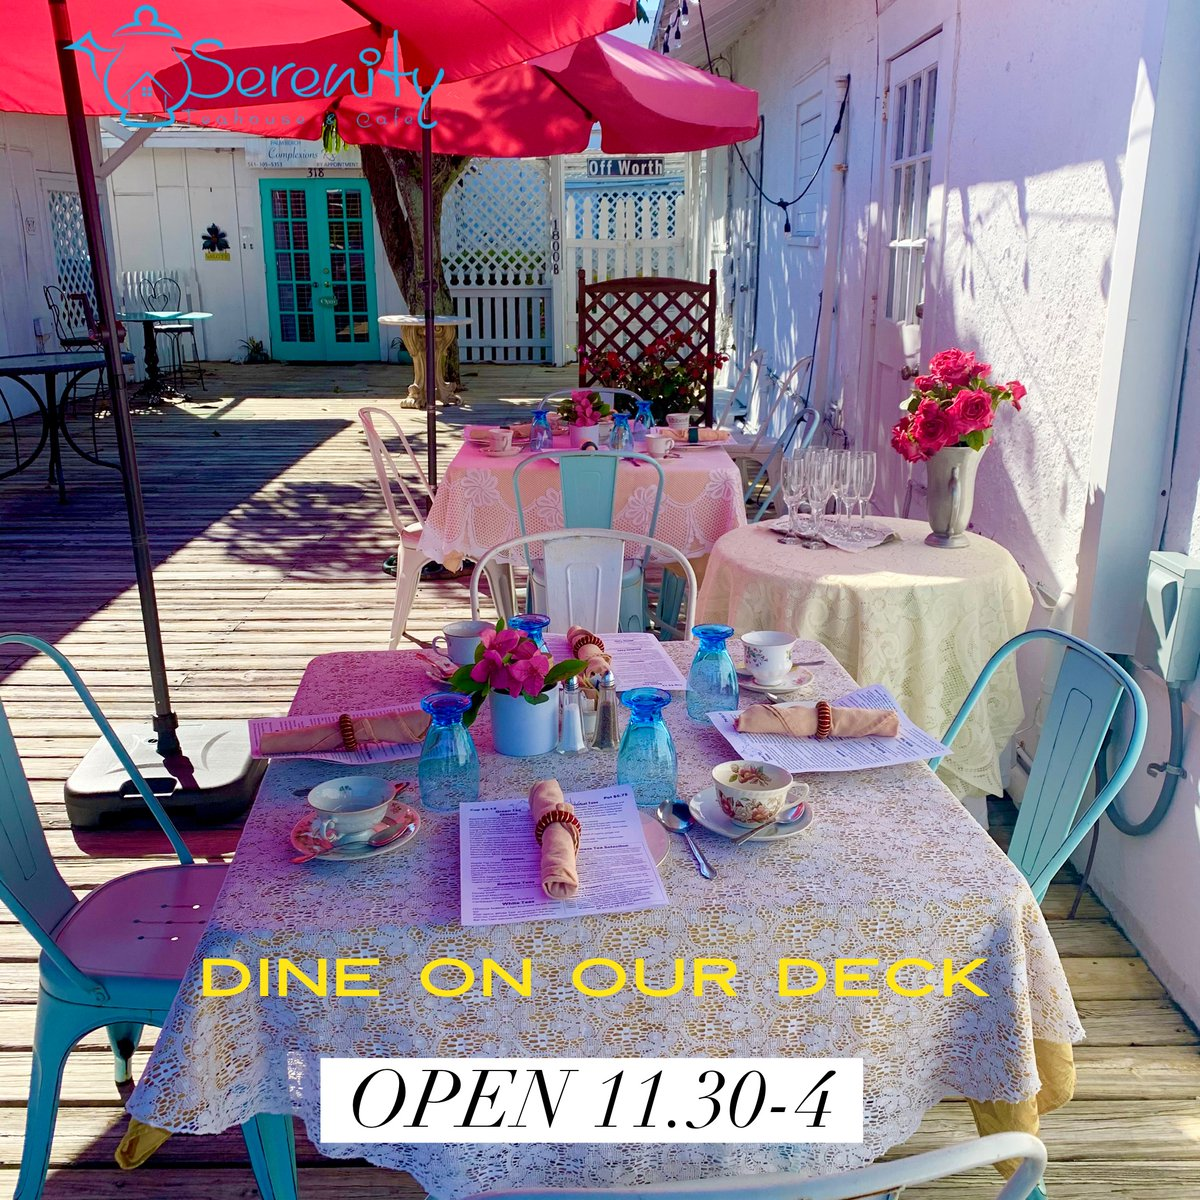 🏖🍽🥗Outdoors doing available. Call 561-655-3911 or book online at  #lunch #dinealfresco #dinelocal #tea #teatime #dineondixie #pb #pbfood #wpbfood #wpb #dinesmall #dineondixie #local #community #teahouse #ff #tgif #Teagif